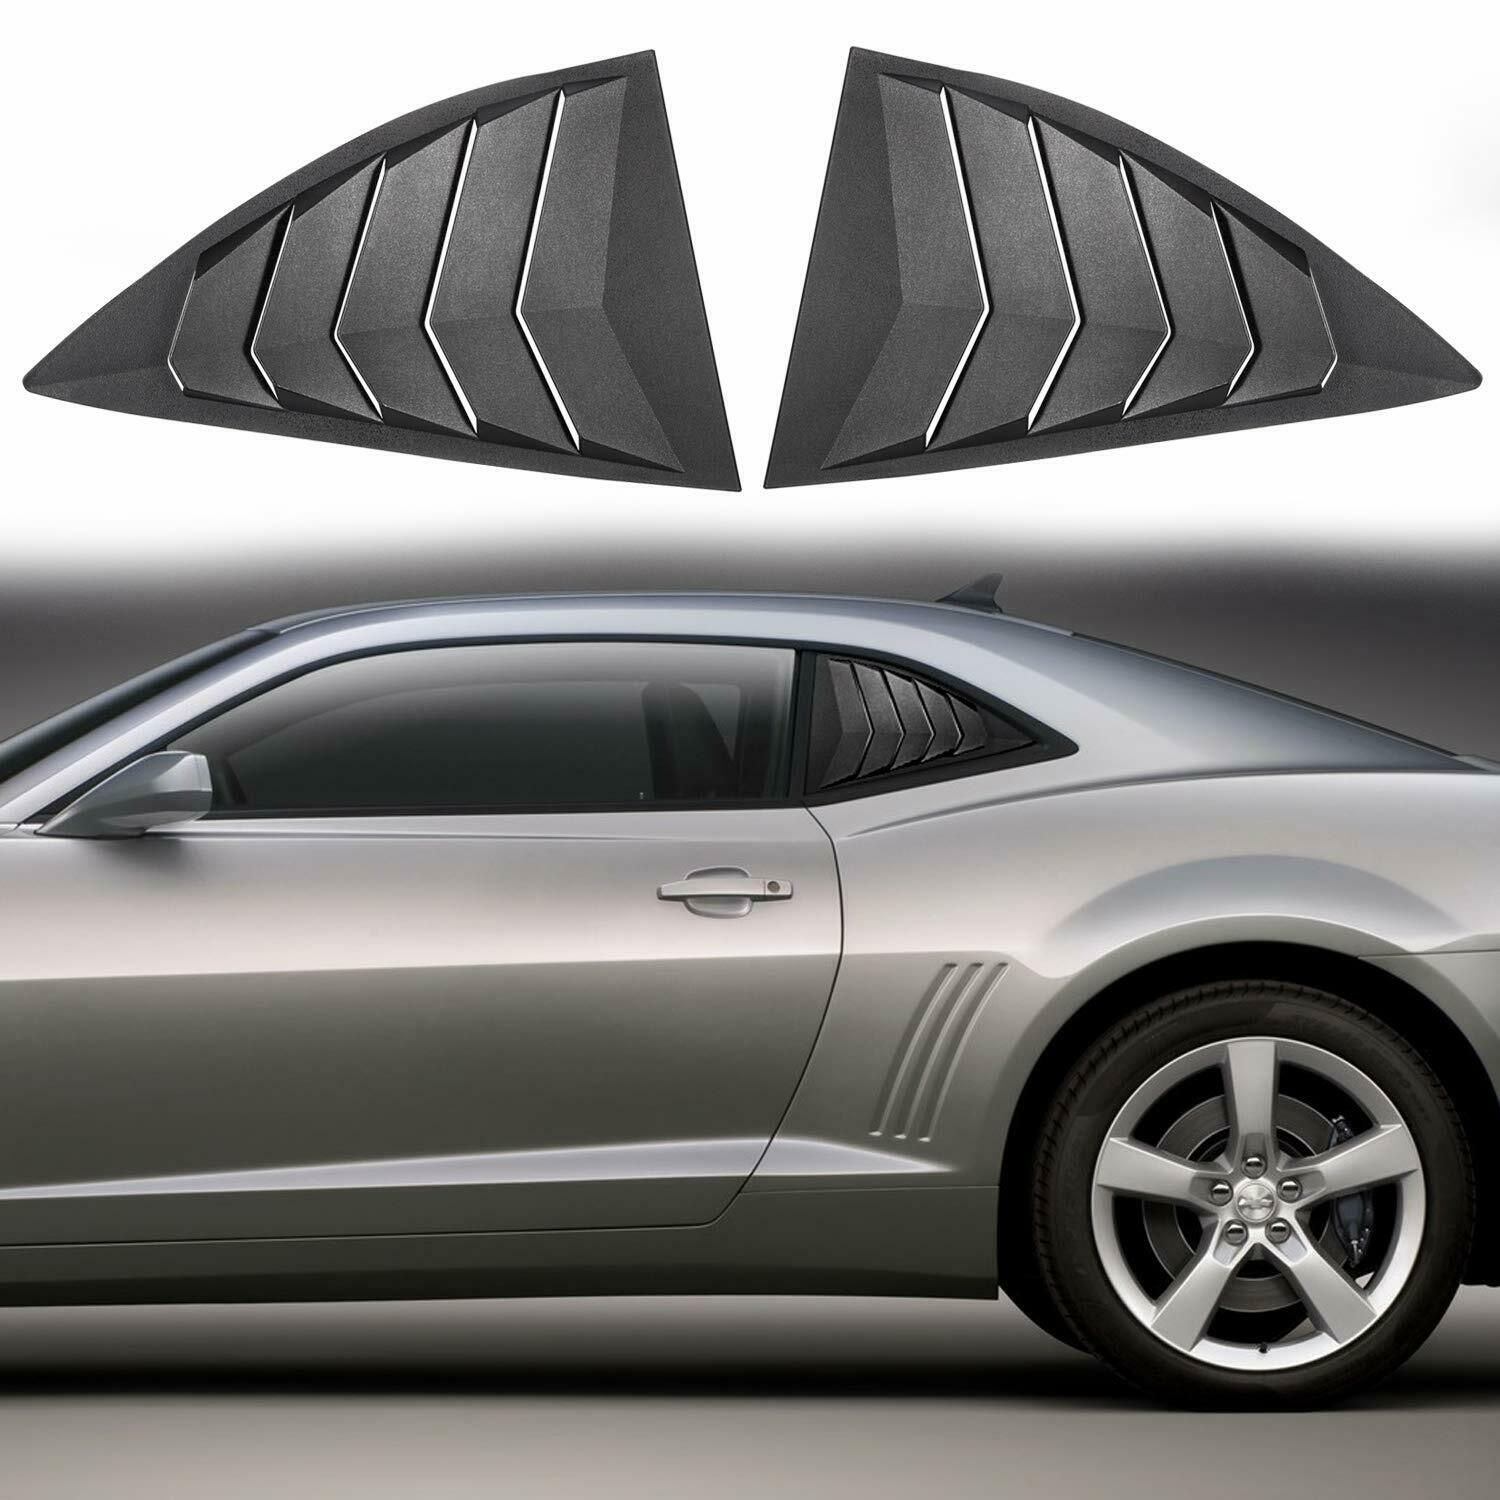 Chuang Qian Side Window Scoop Louvers ABS Window Visor Cover Sun Rain Shade Vent for 2010-2015 Chevy Camaro LS LT RS SS